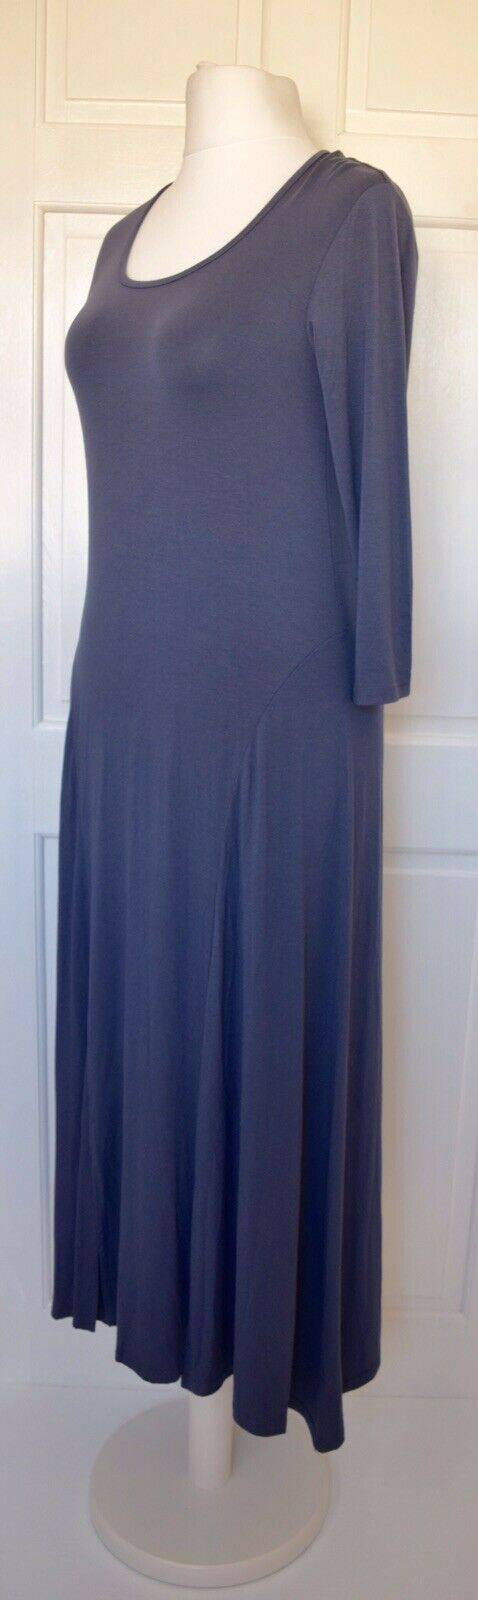 Join Clothes 3 4 Sleeve Dress Midnight bluee Size S BNWT NEW